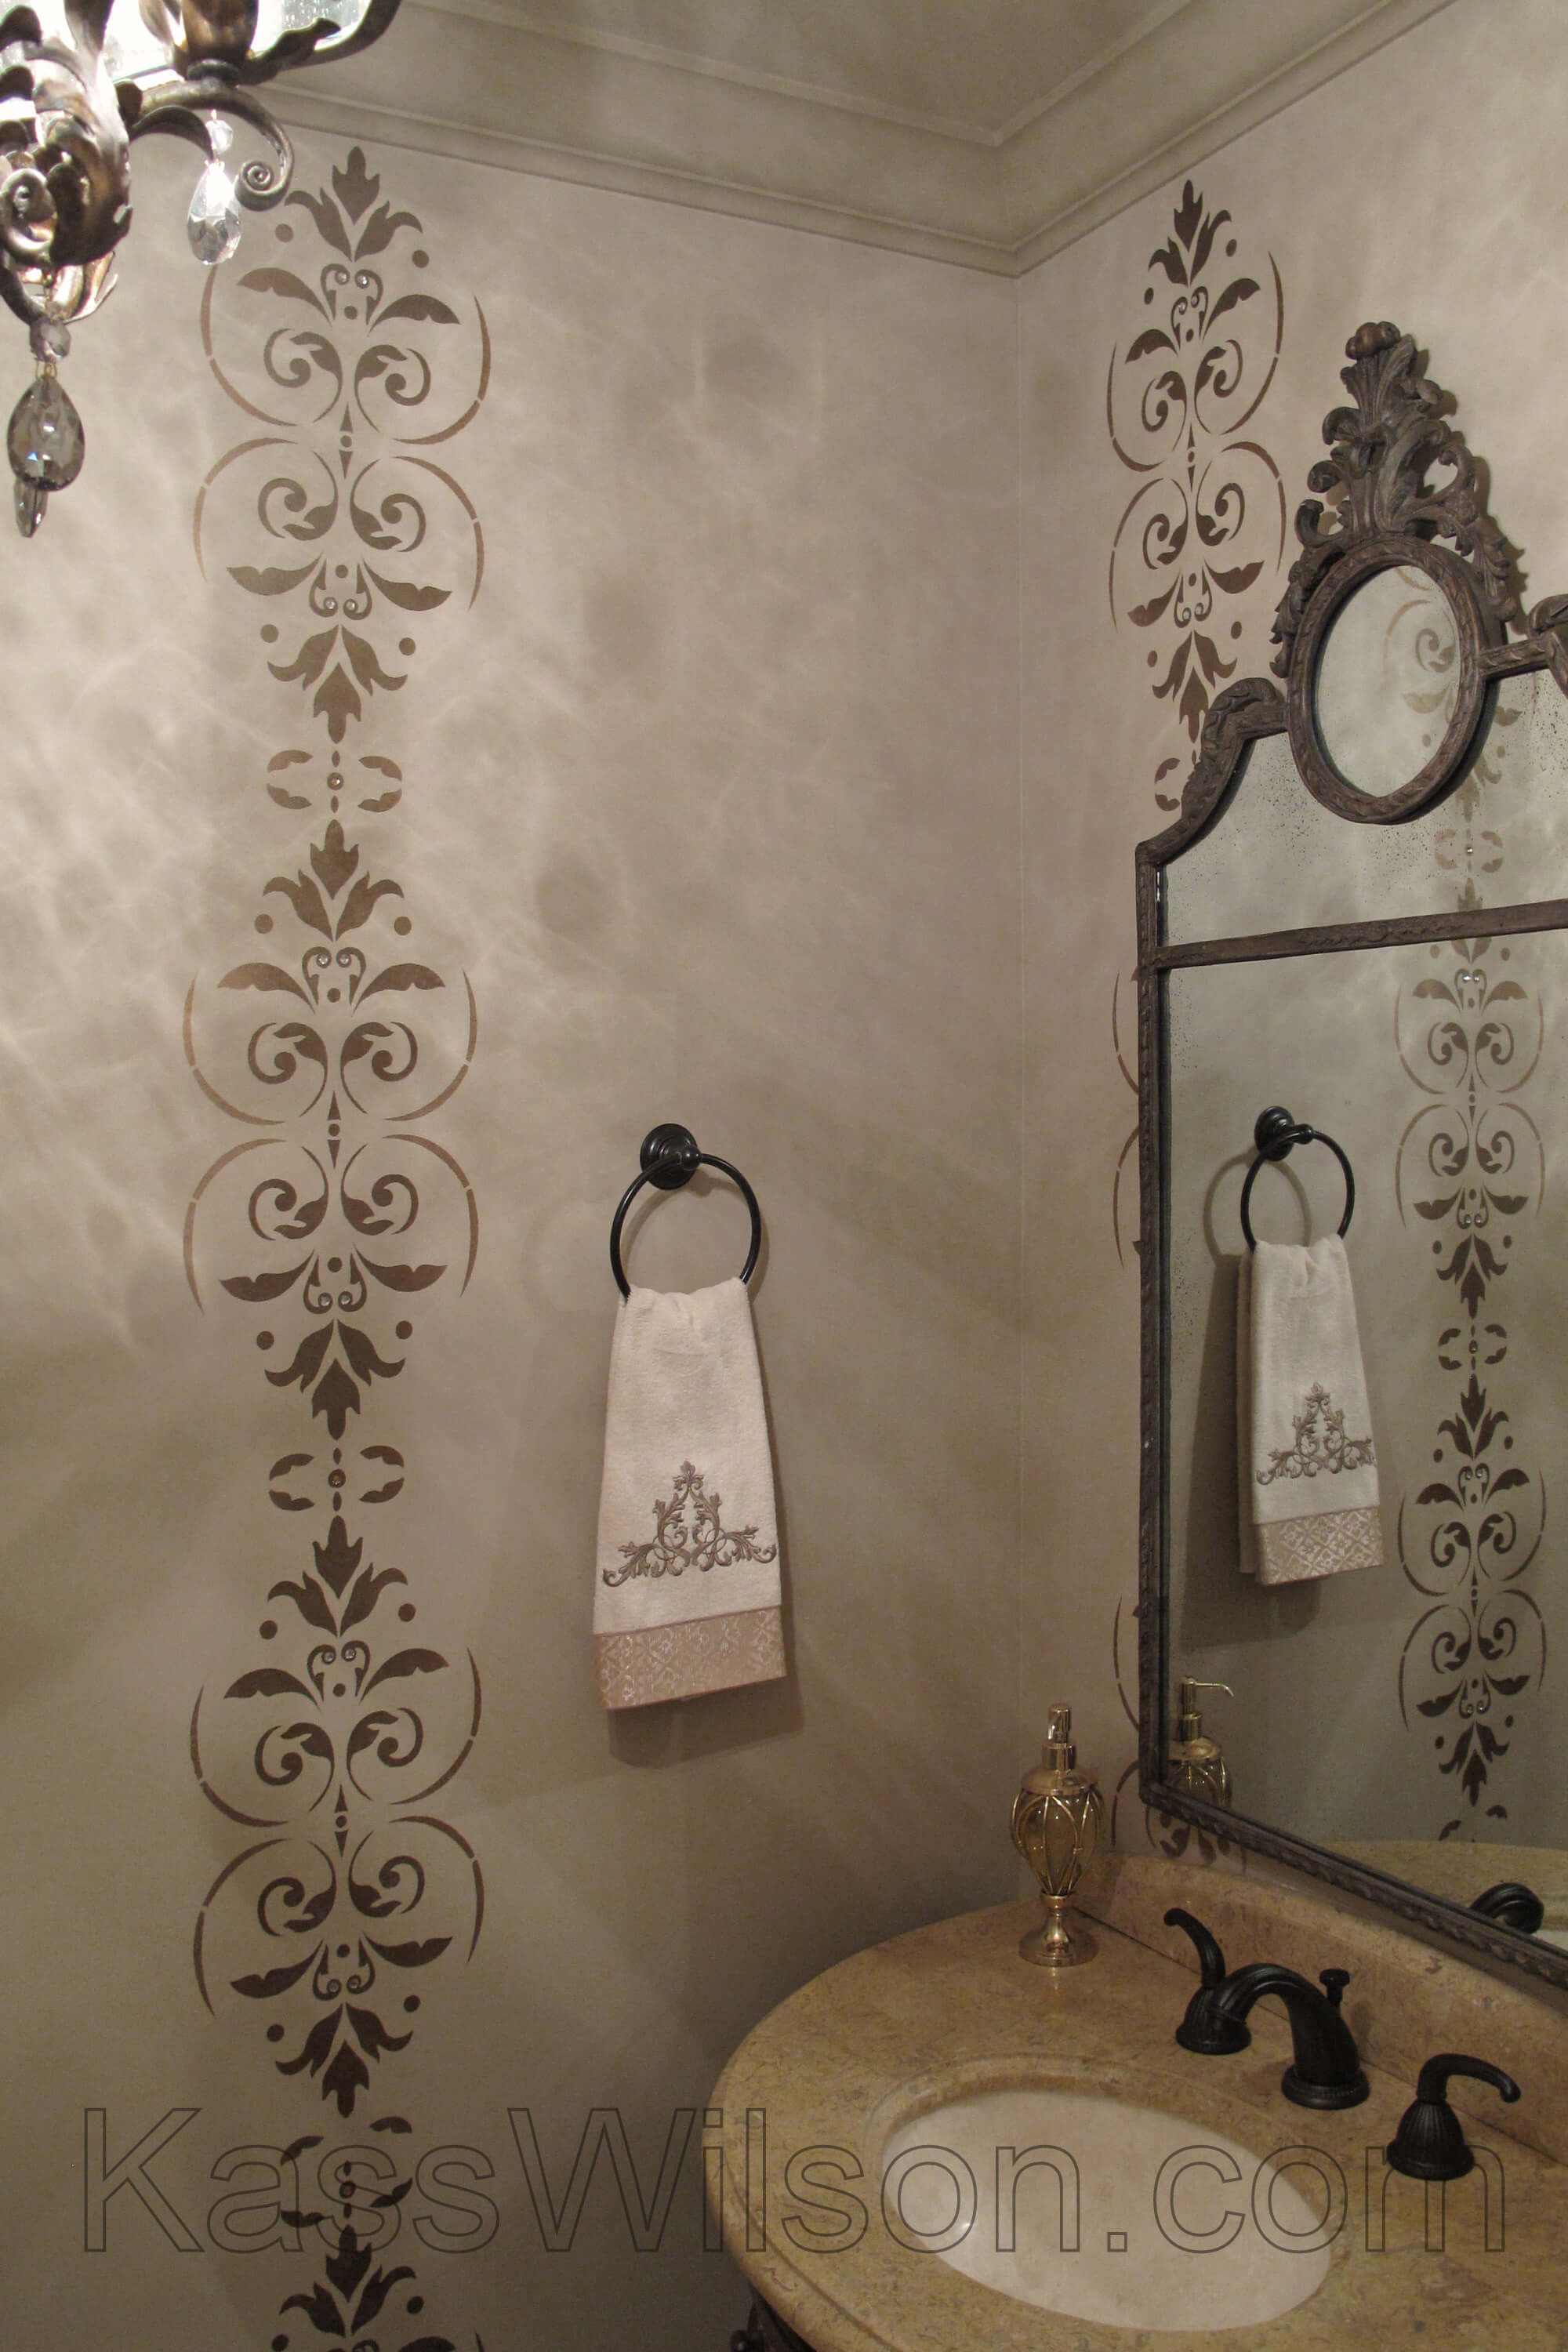 stenciled decorative painting in powder room